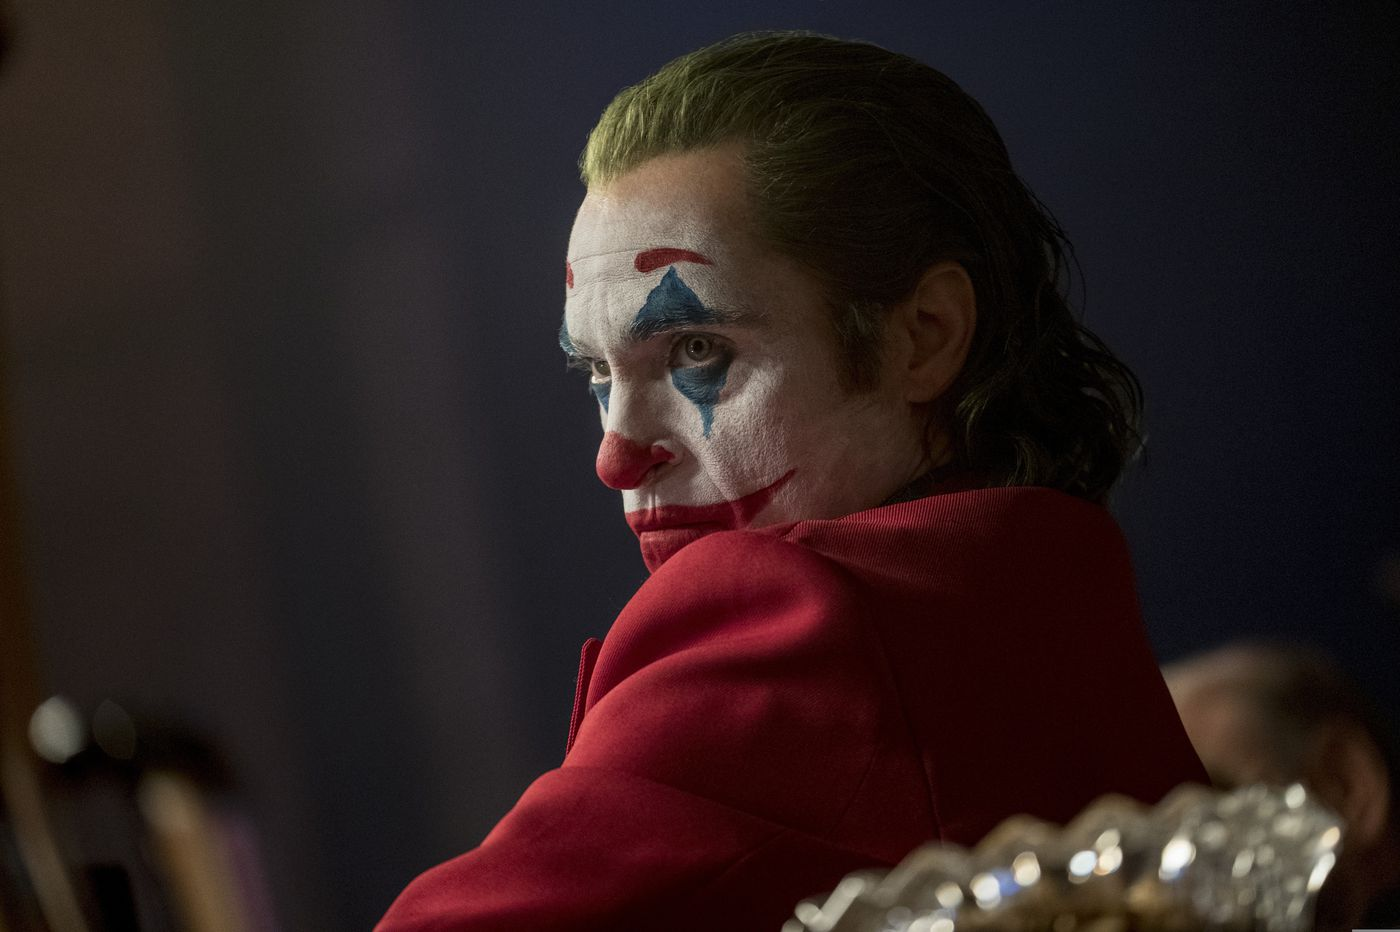 Families of Aurora shooting victims express concerns over 'Joker' in letter to Warner Bros.